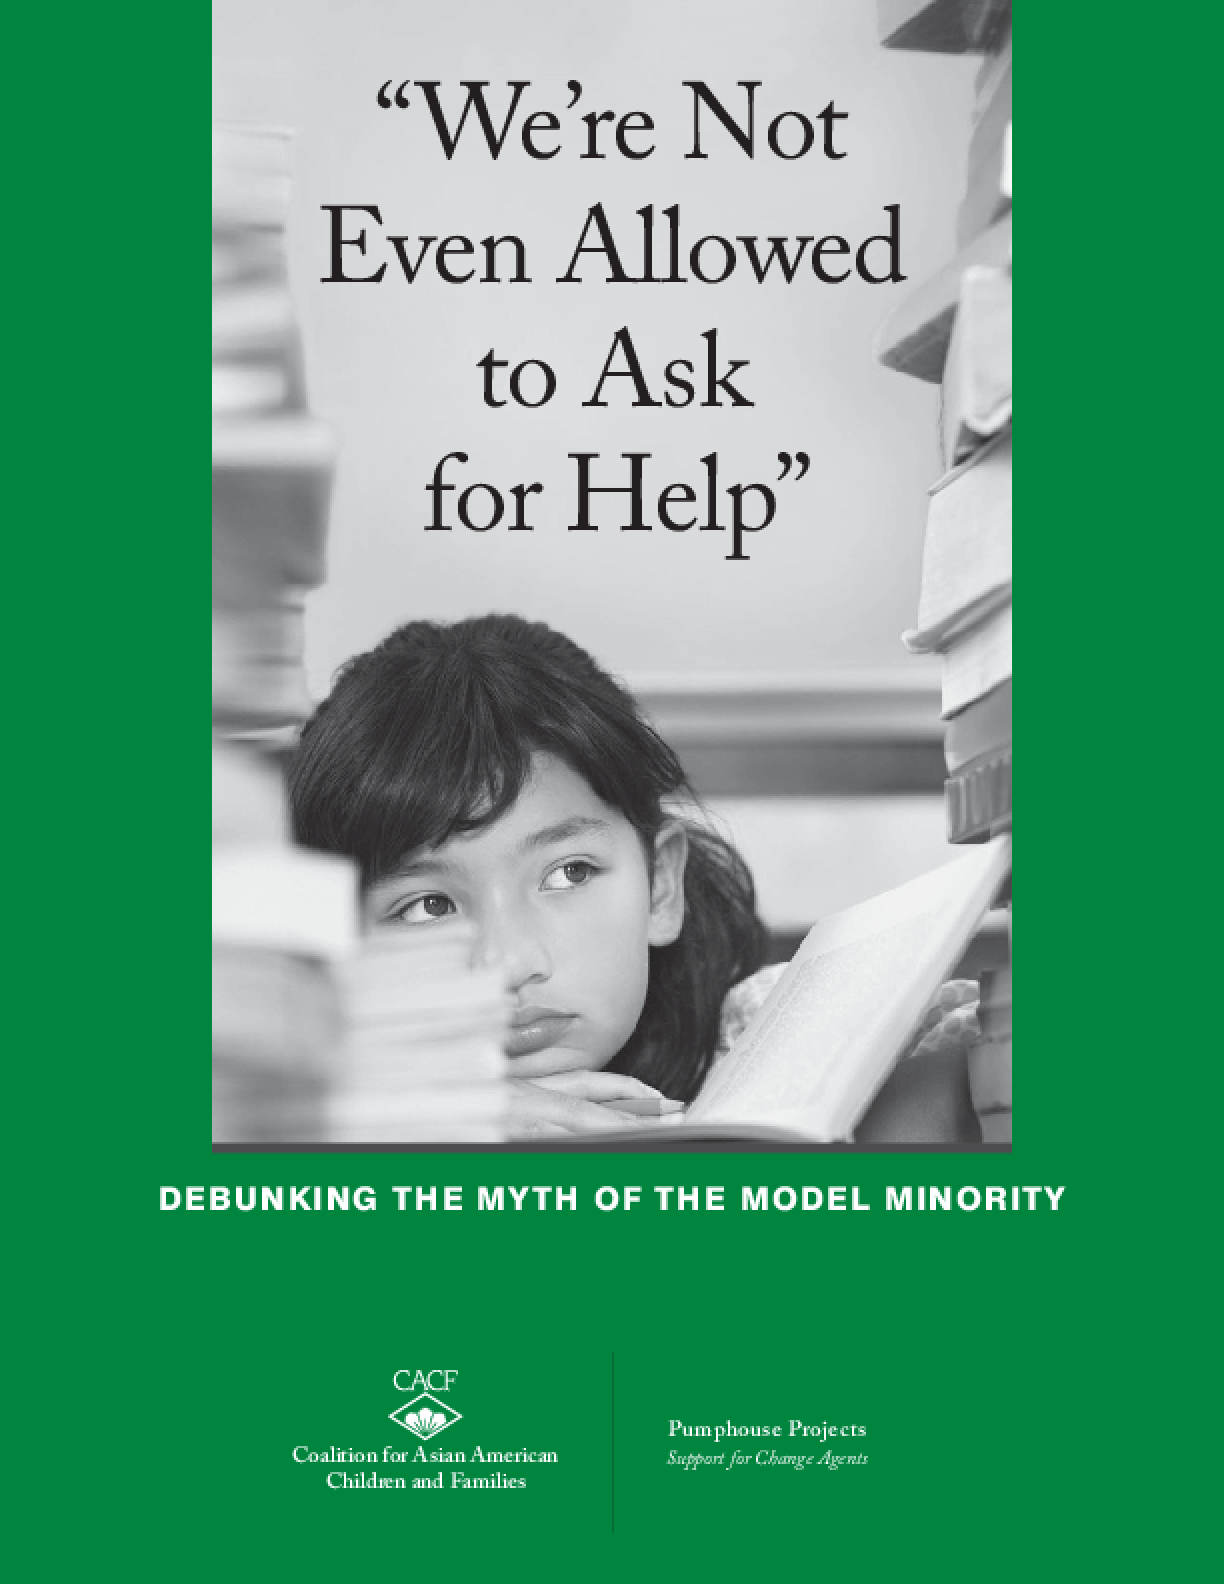 We're Not Even Allowed to Ask for Help Debunking the Myth of the Model Minority